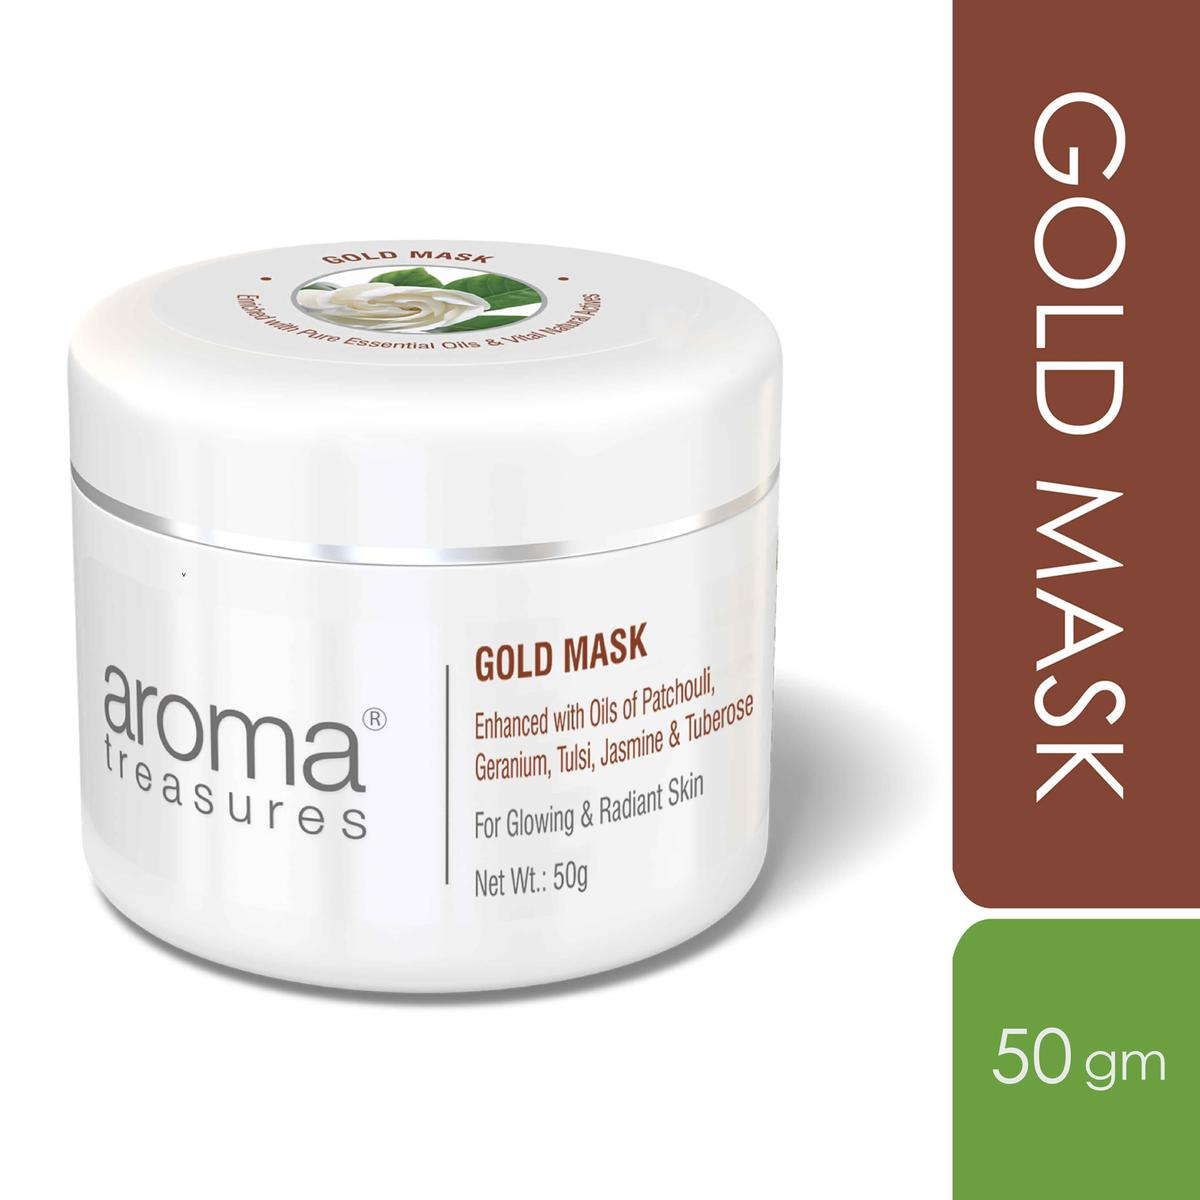 Aroma Treasures Gold Mask - 50 Gm